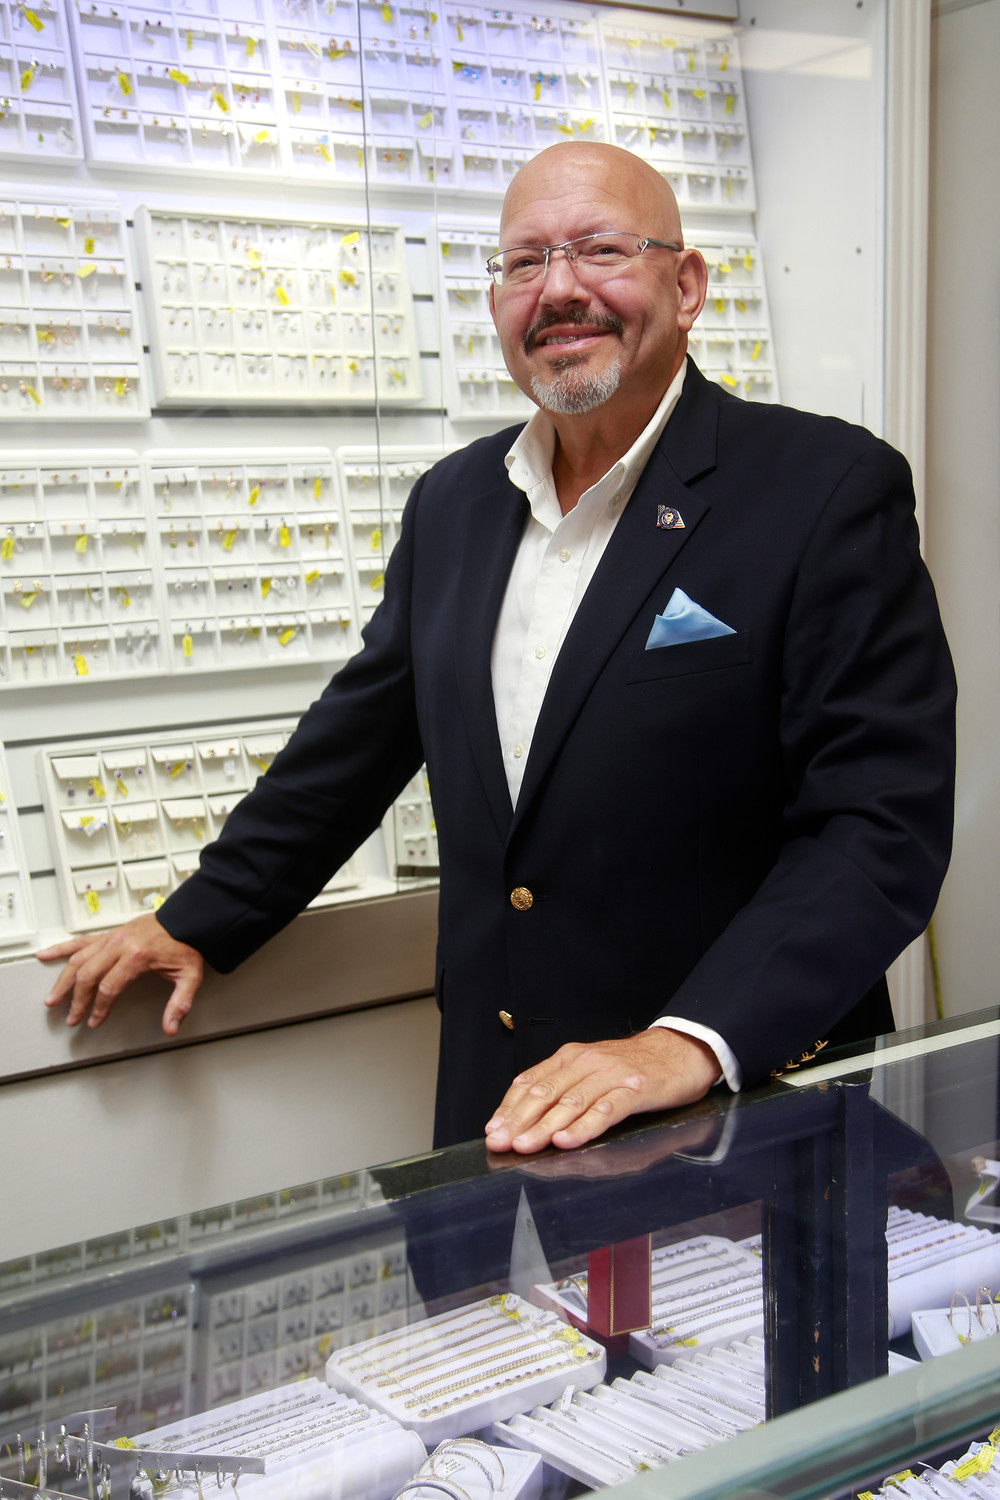 Gary Hudes is celebrating the 95th anniversary of Gennaro Jewelers.